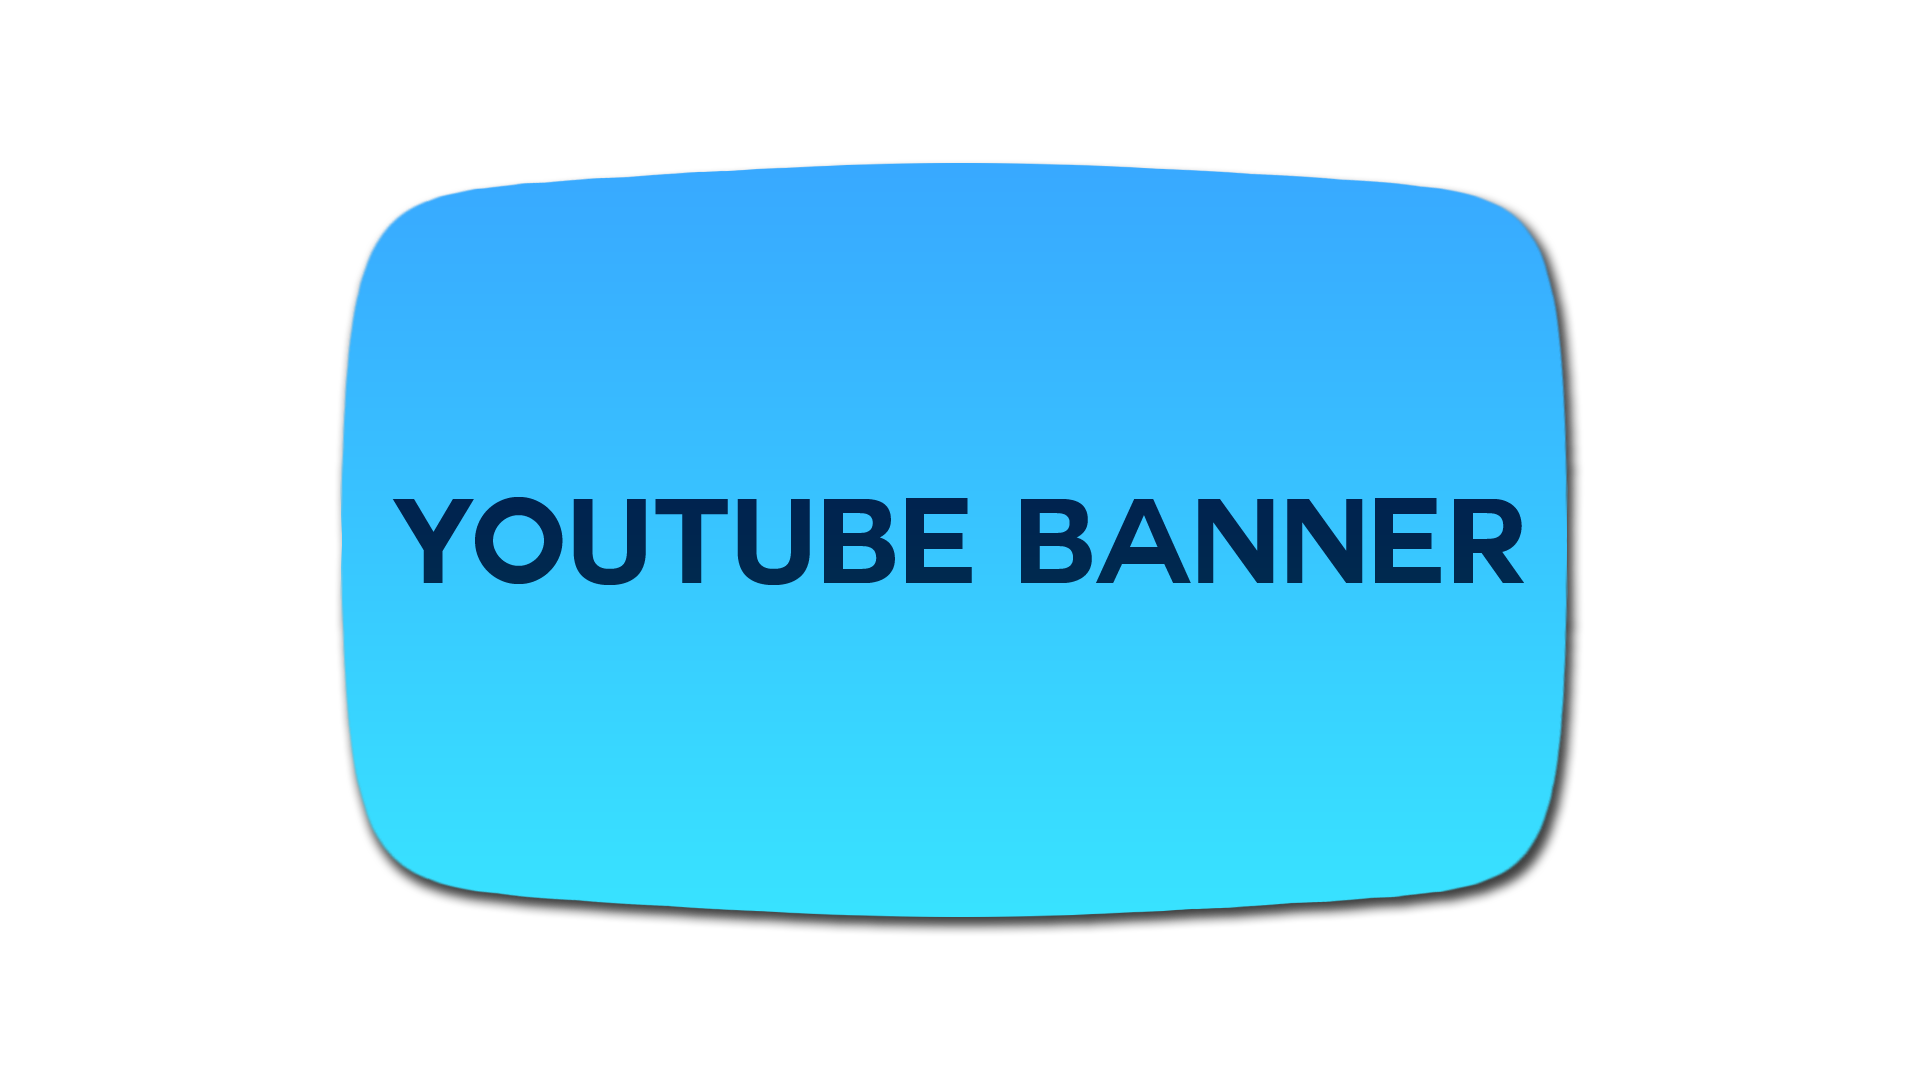 Youtube clipart custom. Banner images gallery for